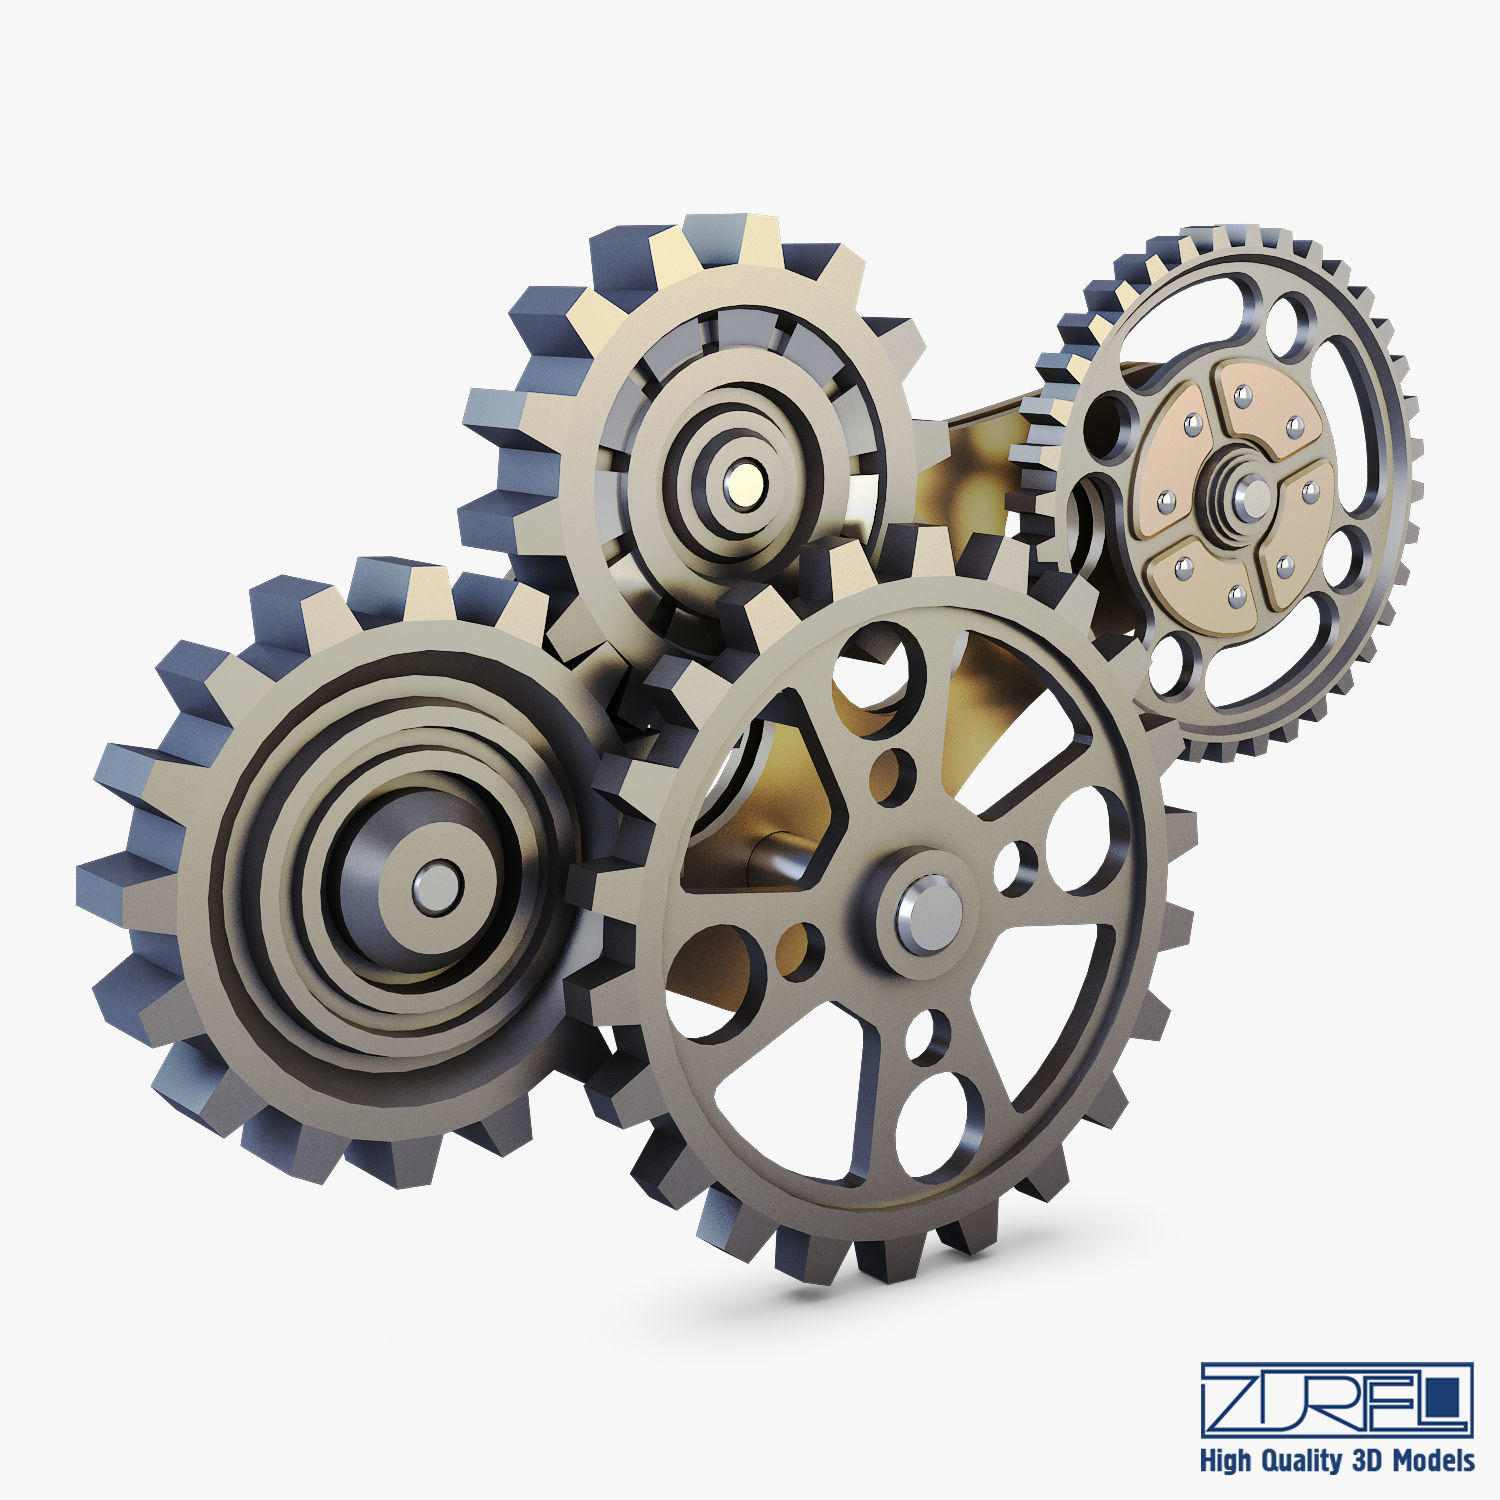 Gear Mechanism Low Poly v 6